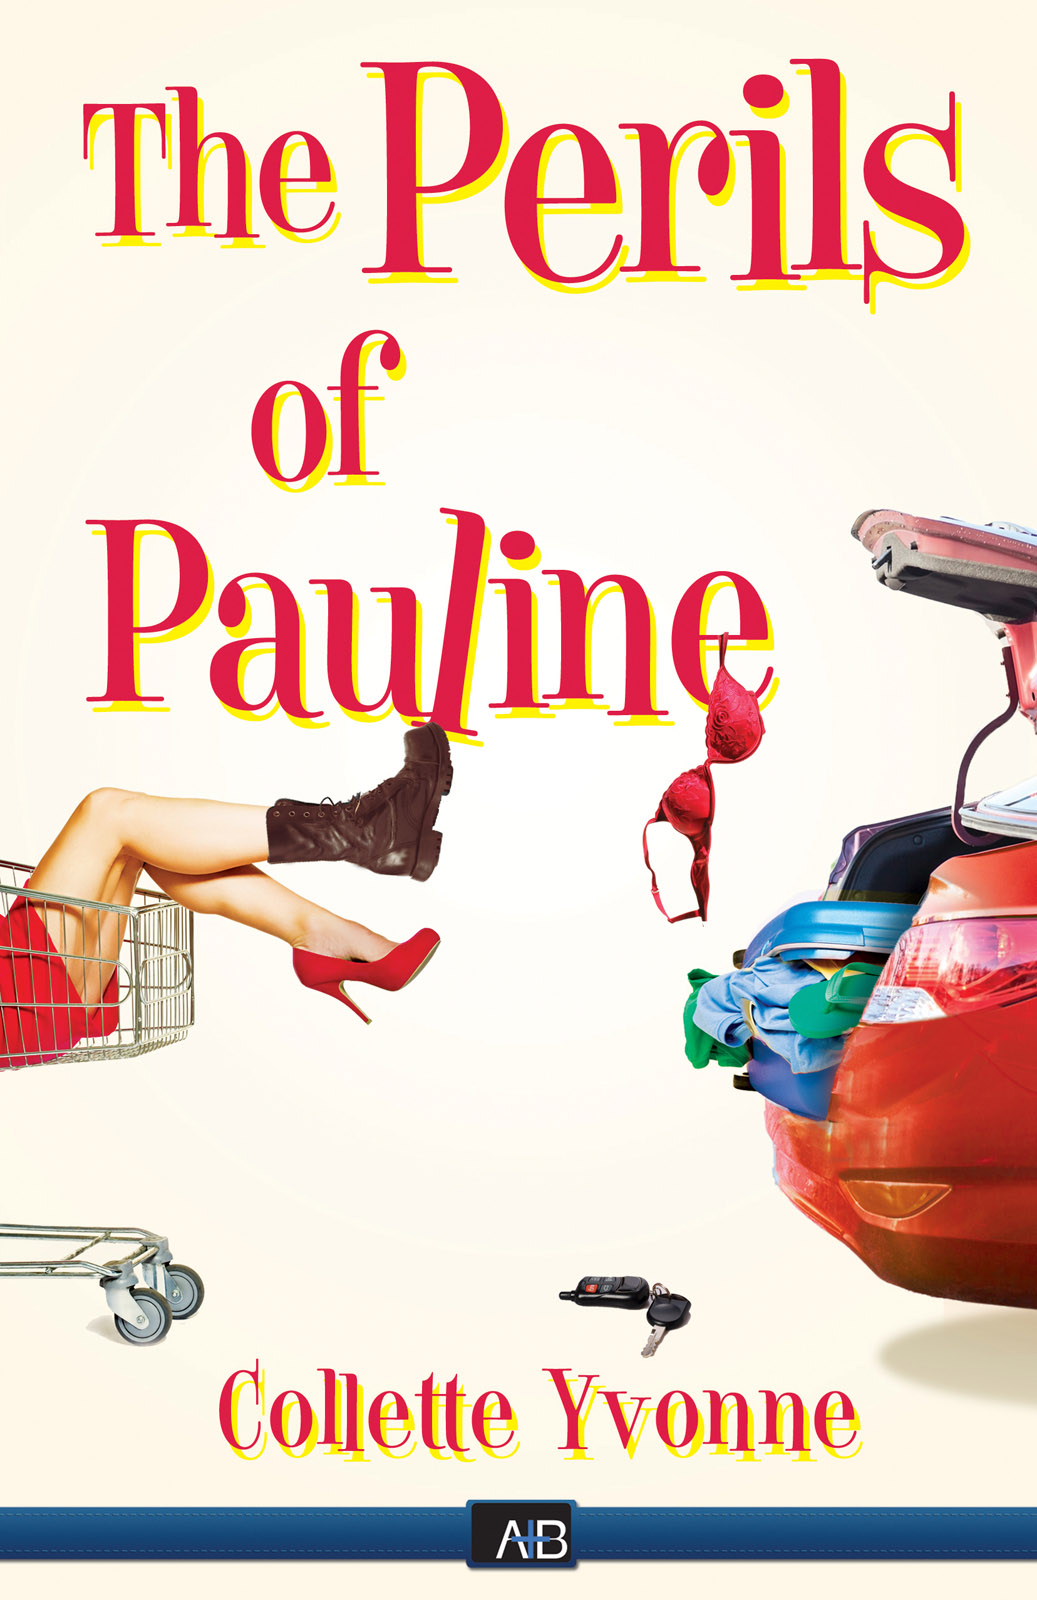 Perils of Pauline, The - Collette Yvonne-1